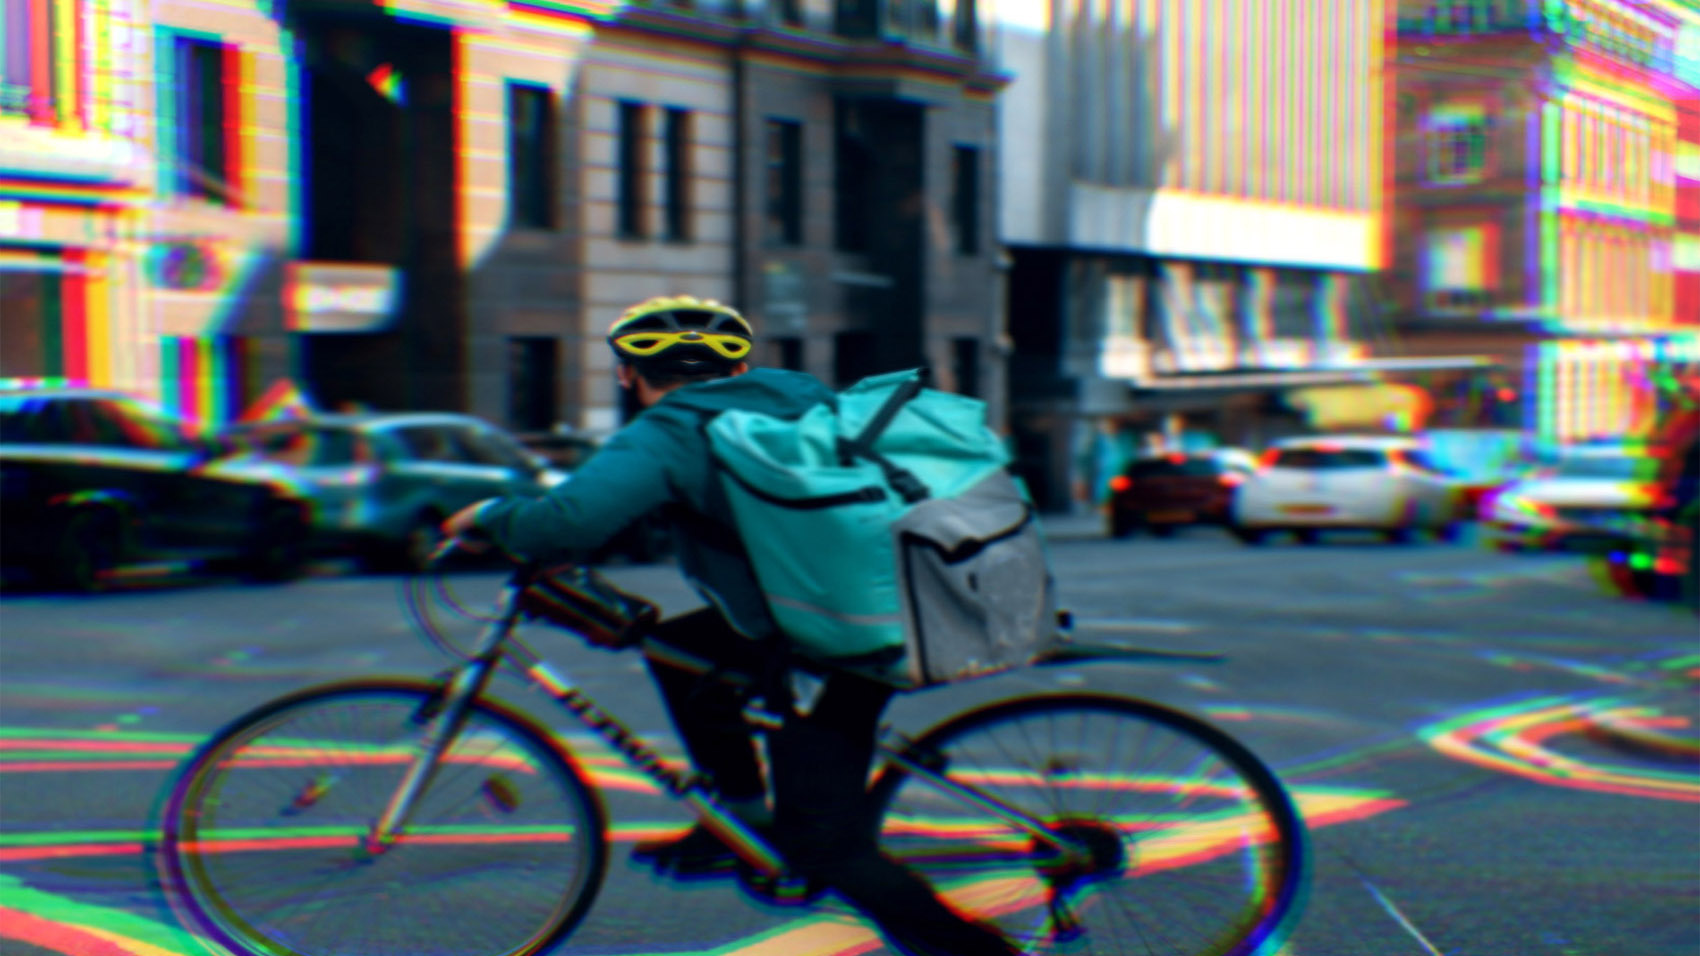 A food delivery gig worker on a bicycle riding in a city street